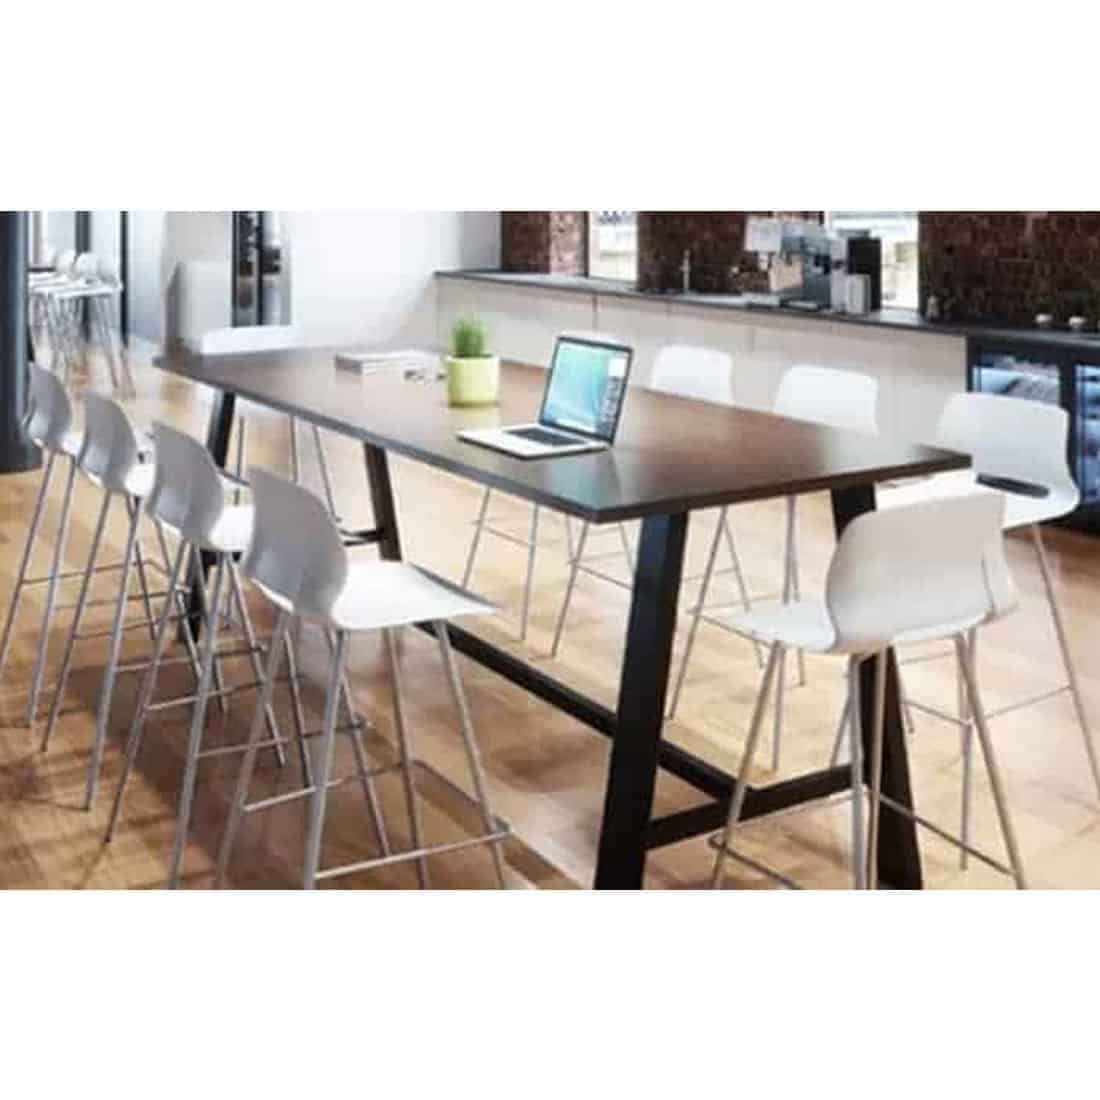 KFI bar height table